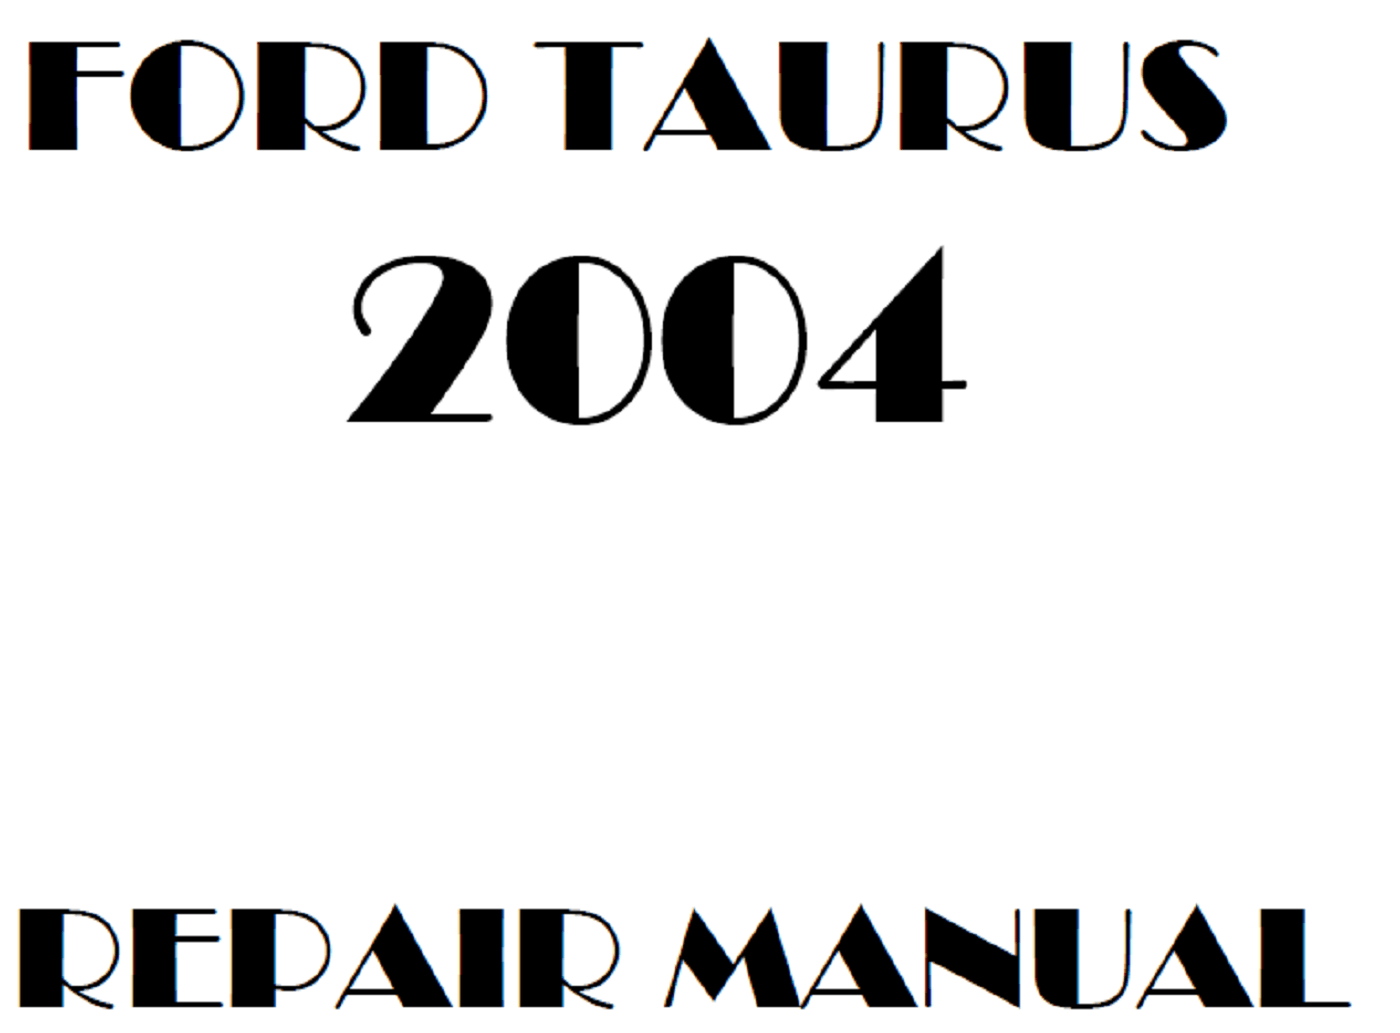 2004 Ford Taurus repair manual